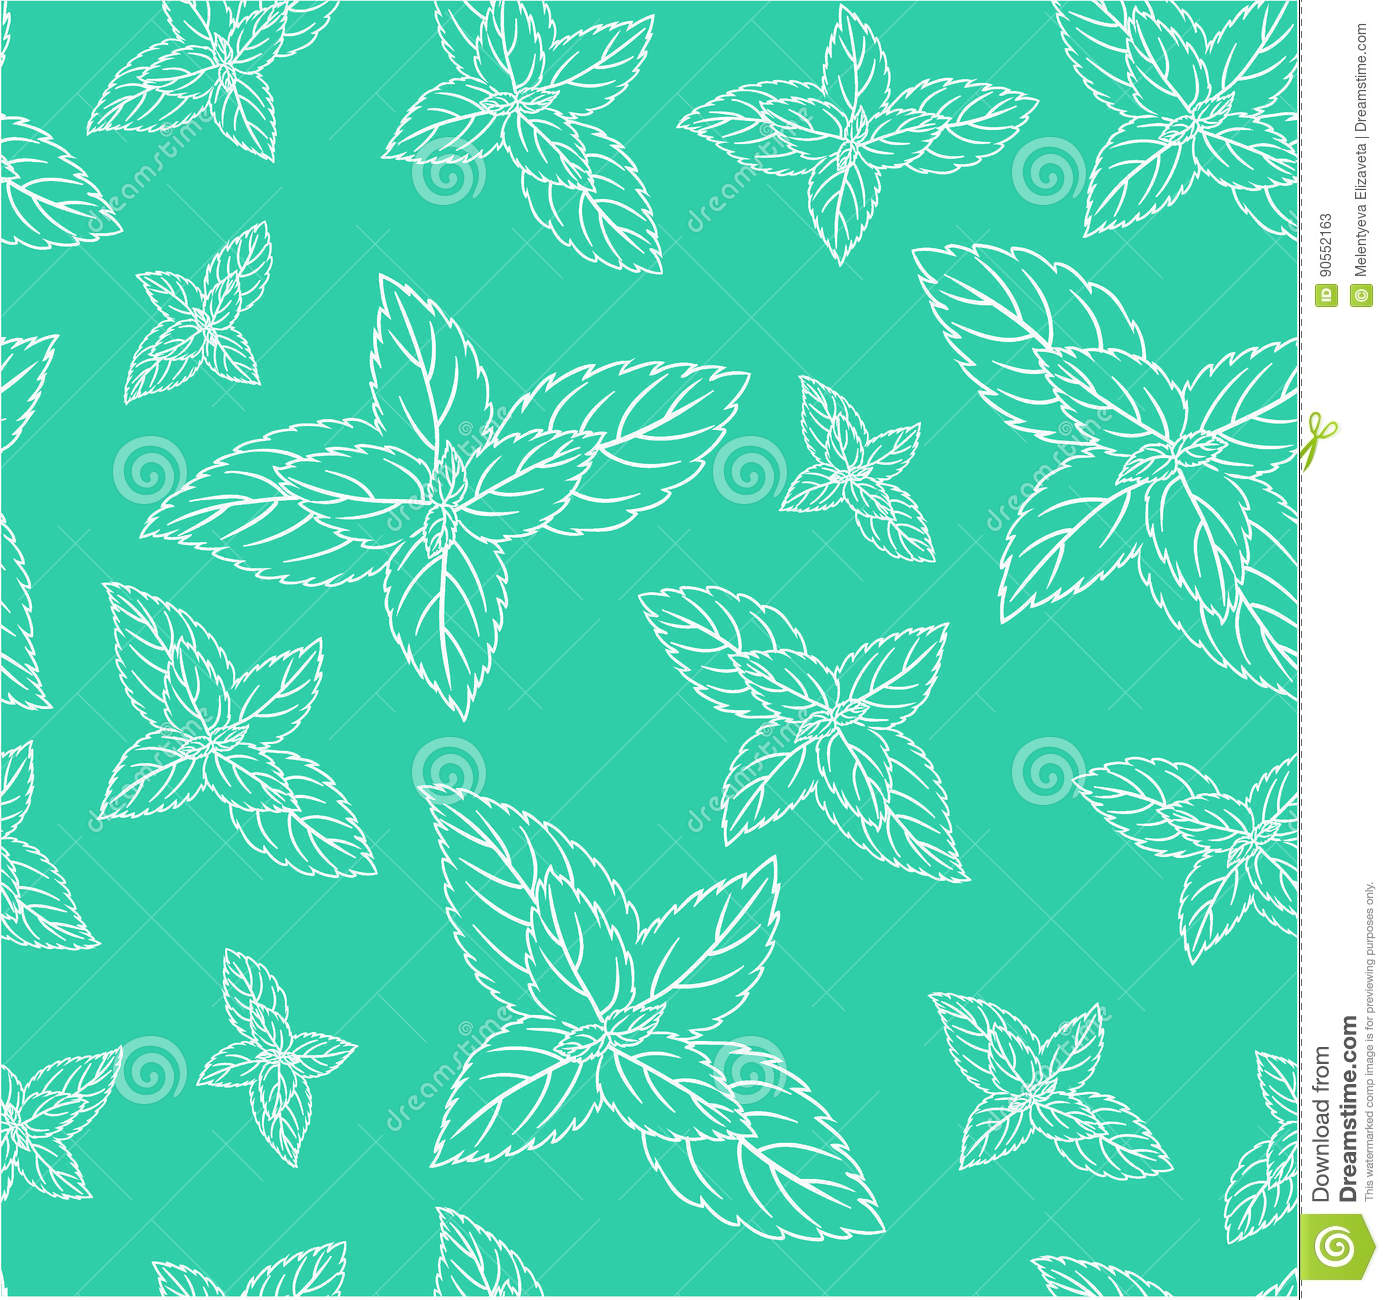 Hand Drawn Vector Seamless Patterns With Mint Leaves, Peppermint ...